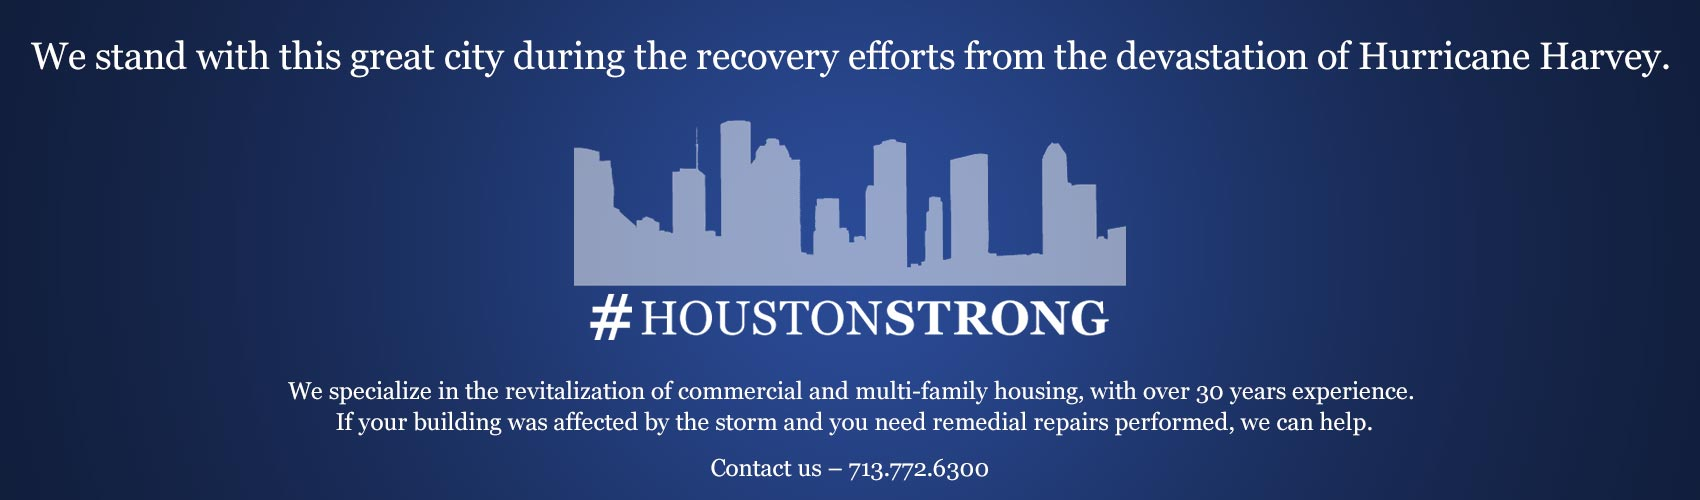 EDI Stands HoustonStrong!